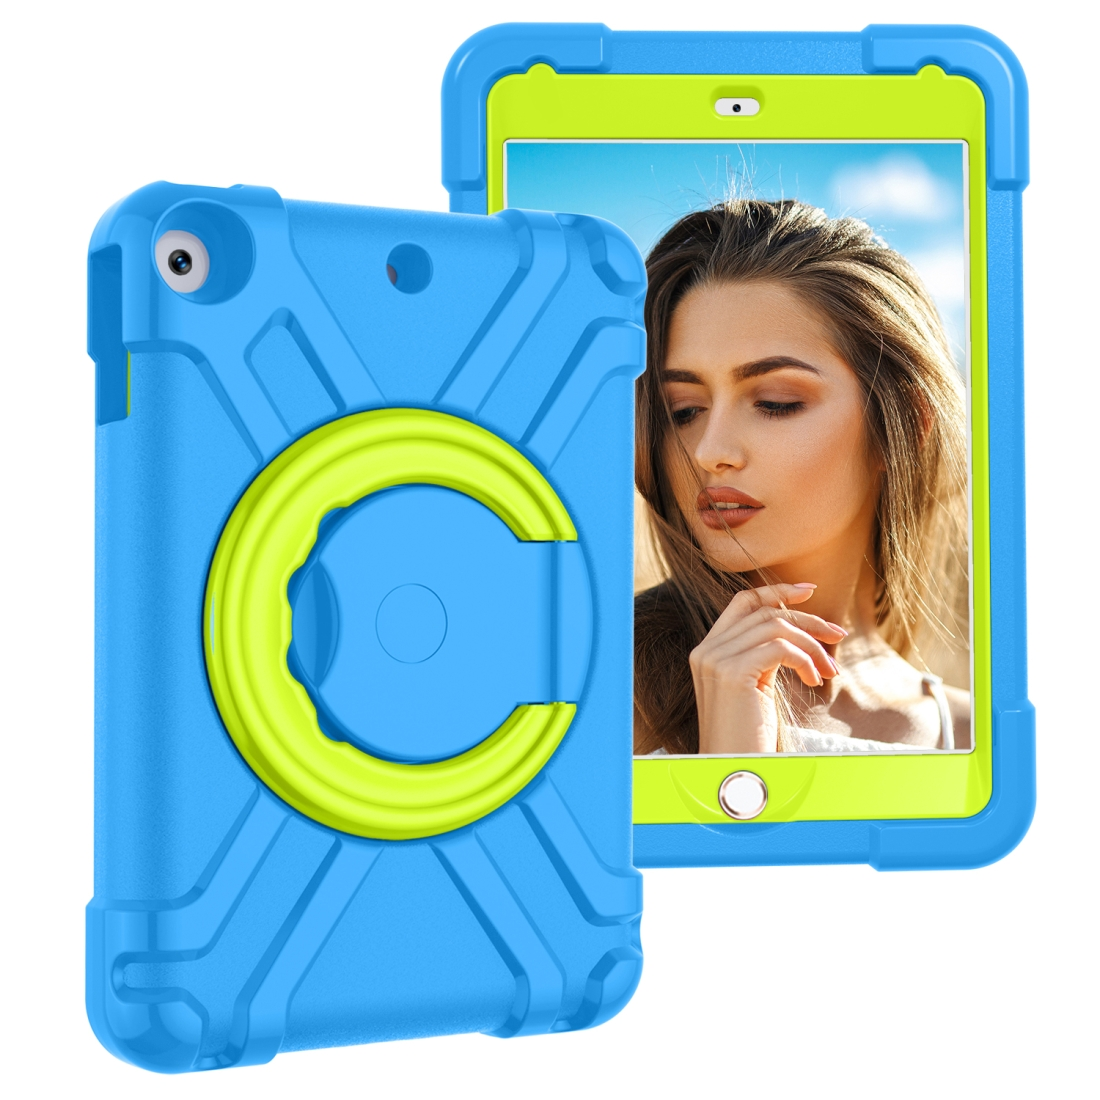 iPad 7th Generation Case (10.2 Inch) Featuring A Durable Case With 360 Rotation (Blue/Green)